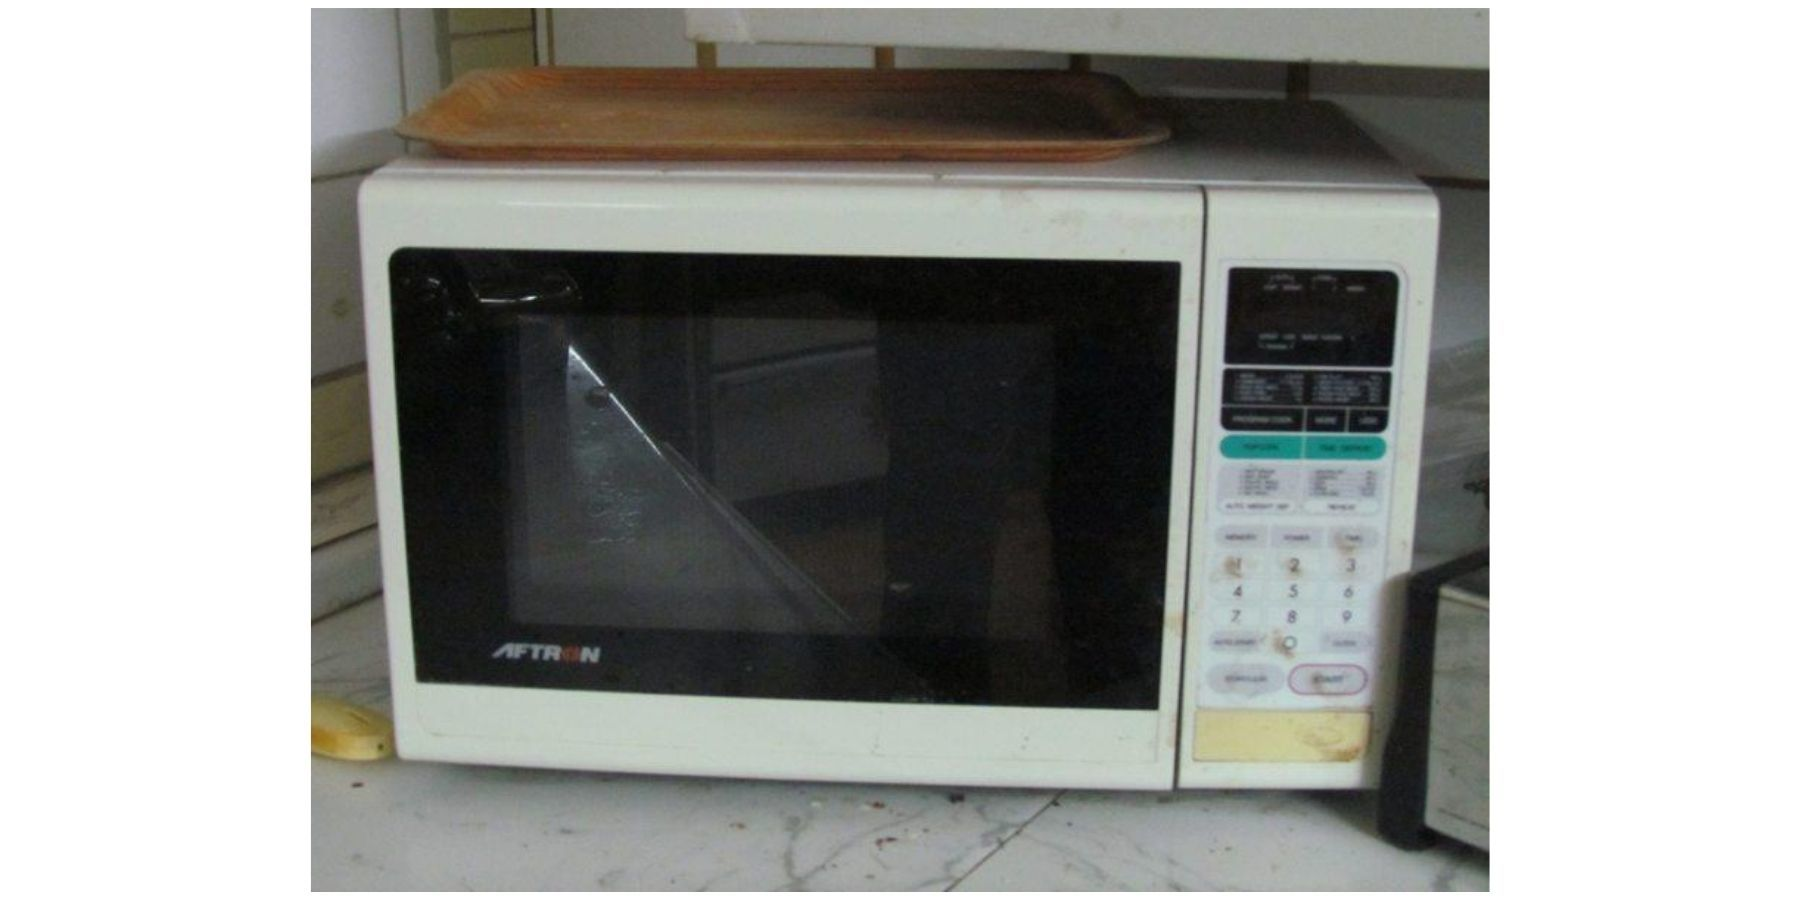 How To Choose A Good Microwave